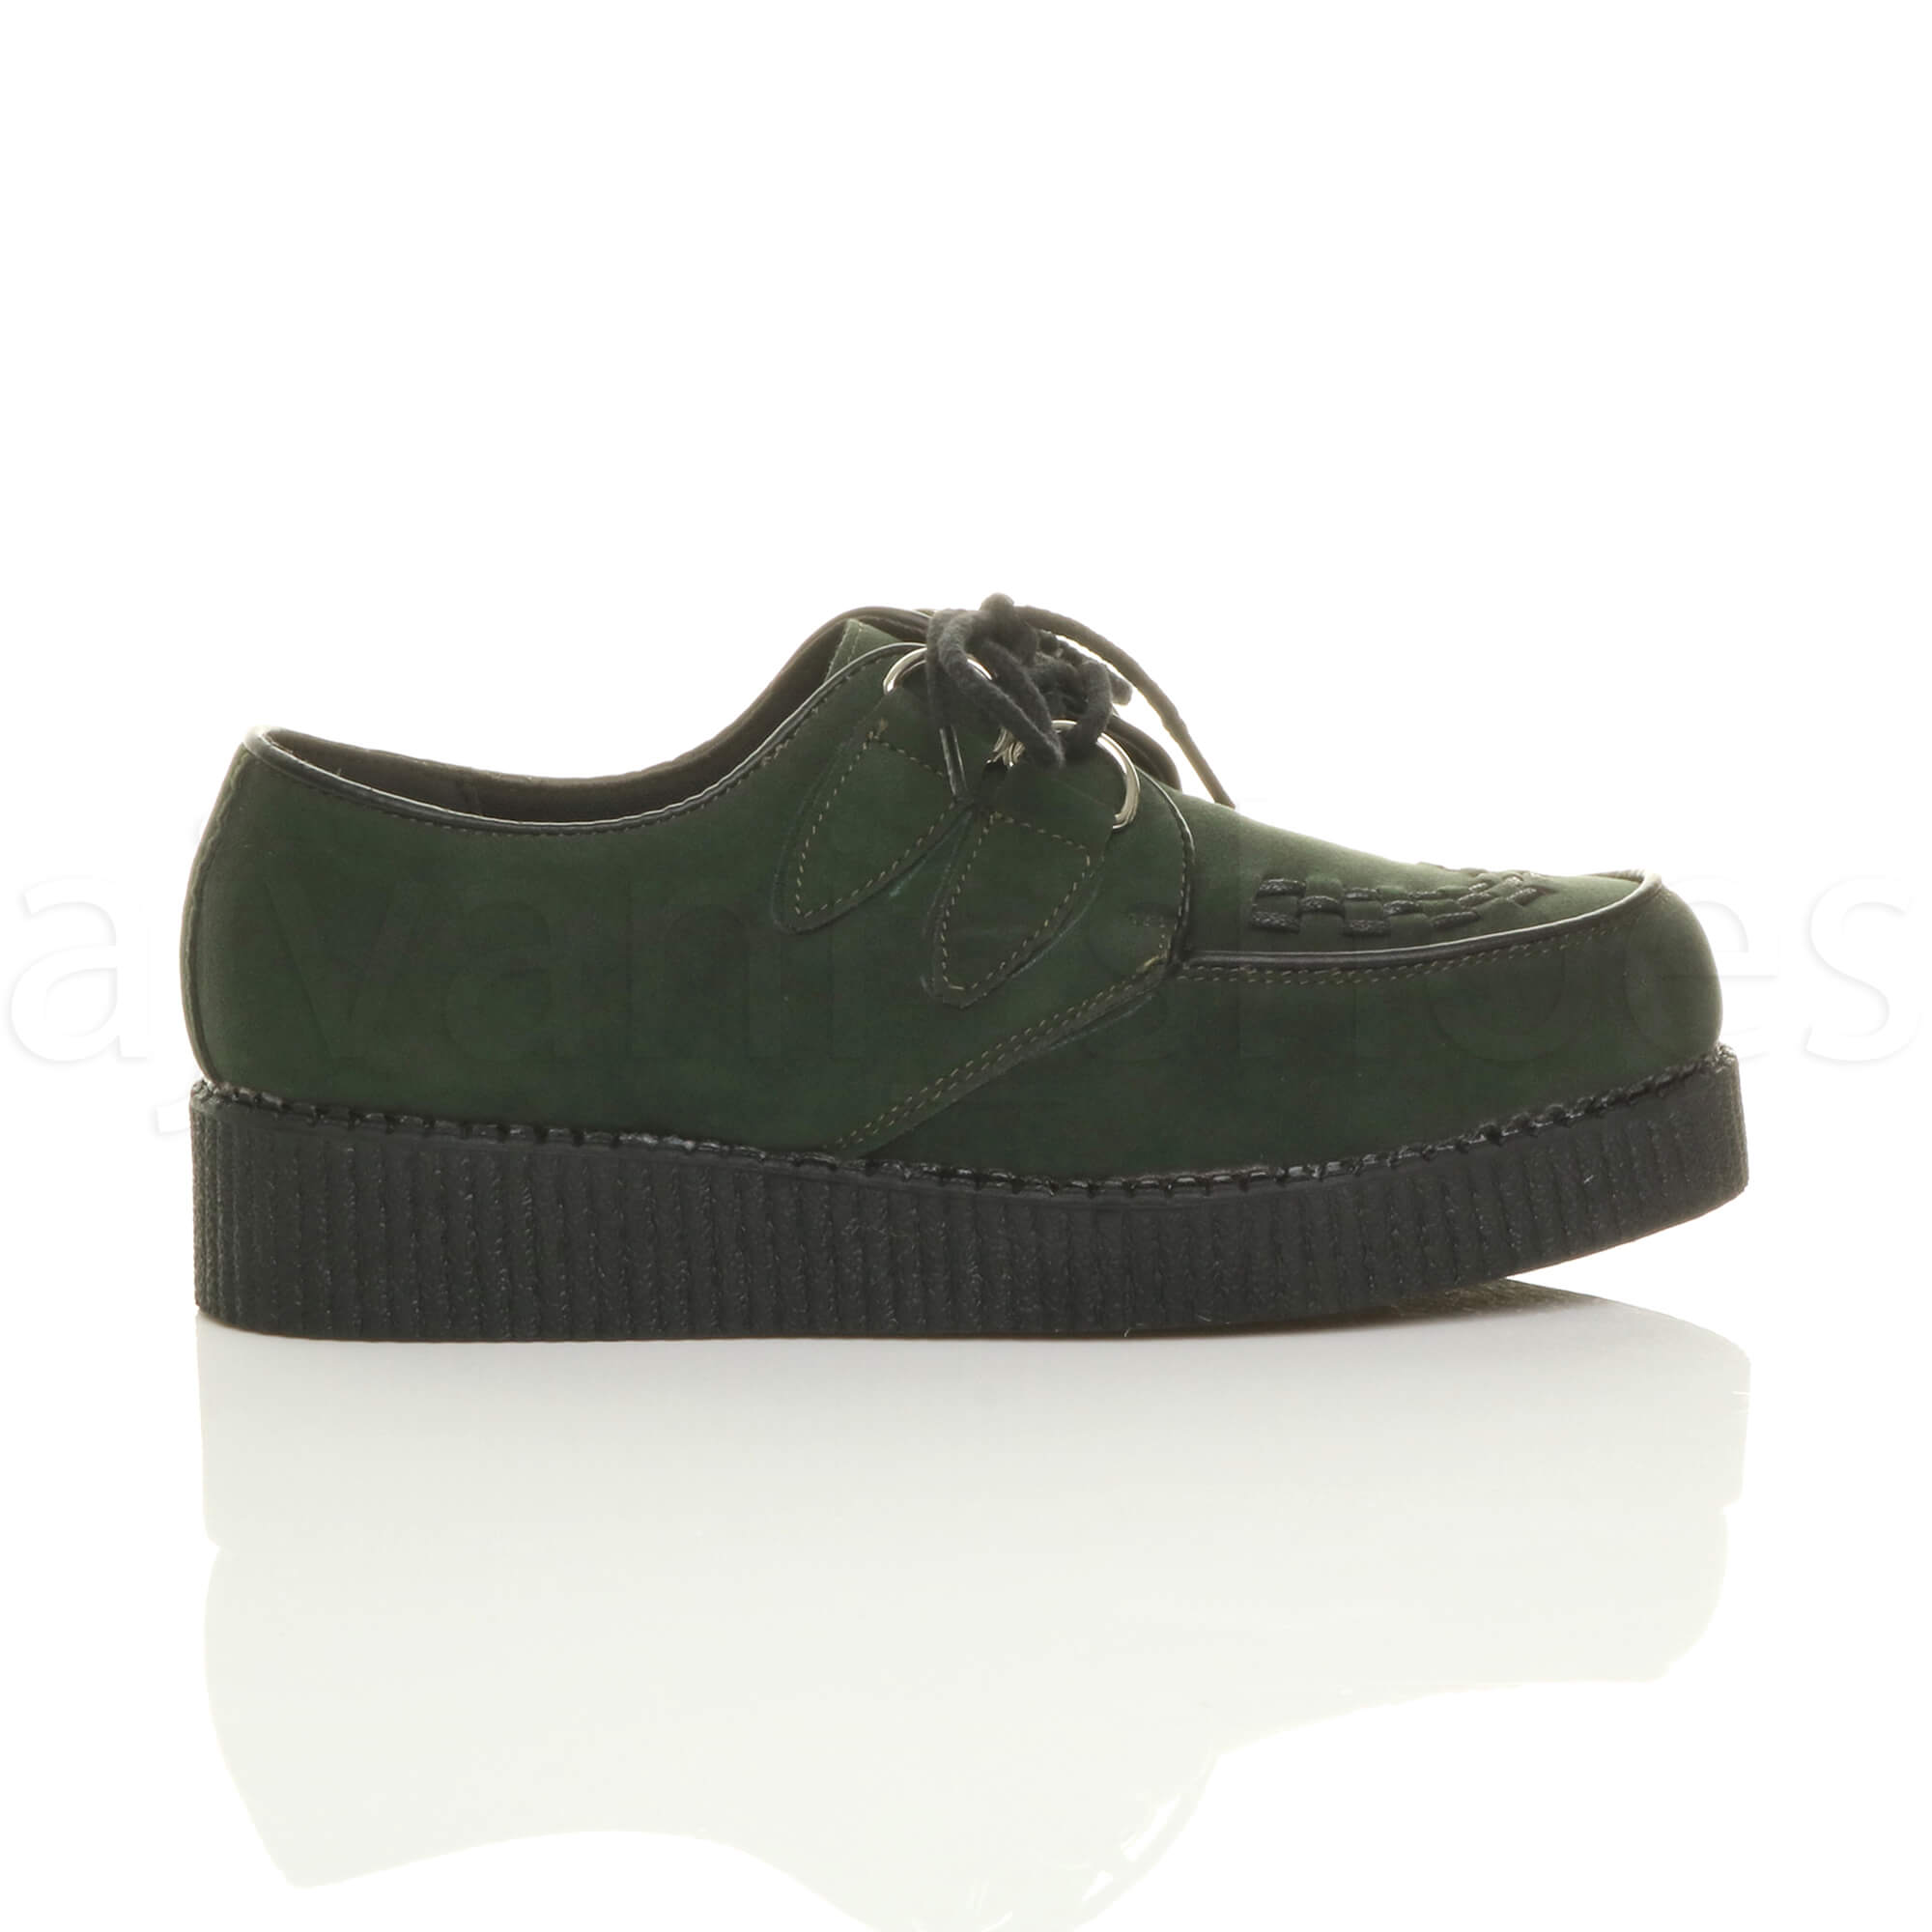 MENS-PLATFORM-WEDGE-LACE-UP-GOTH-PUNK-BROTHEL-CREEPERS-BEETLE-CRUSHERS-SHOES thumbnail 24